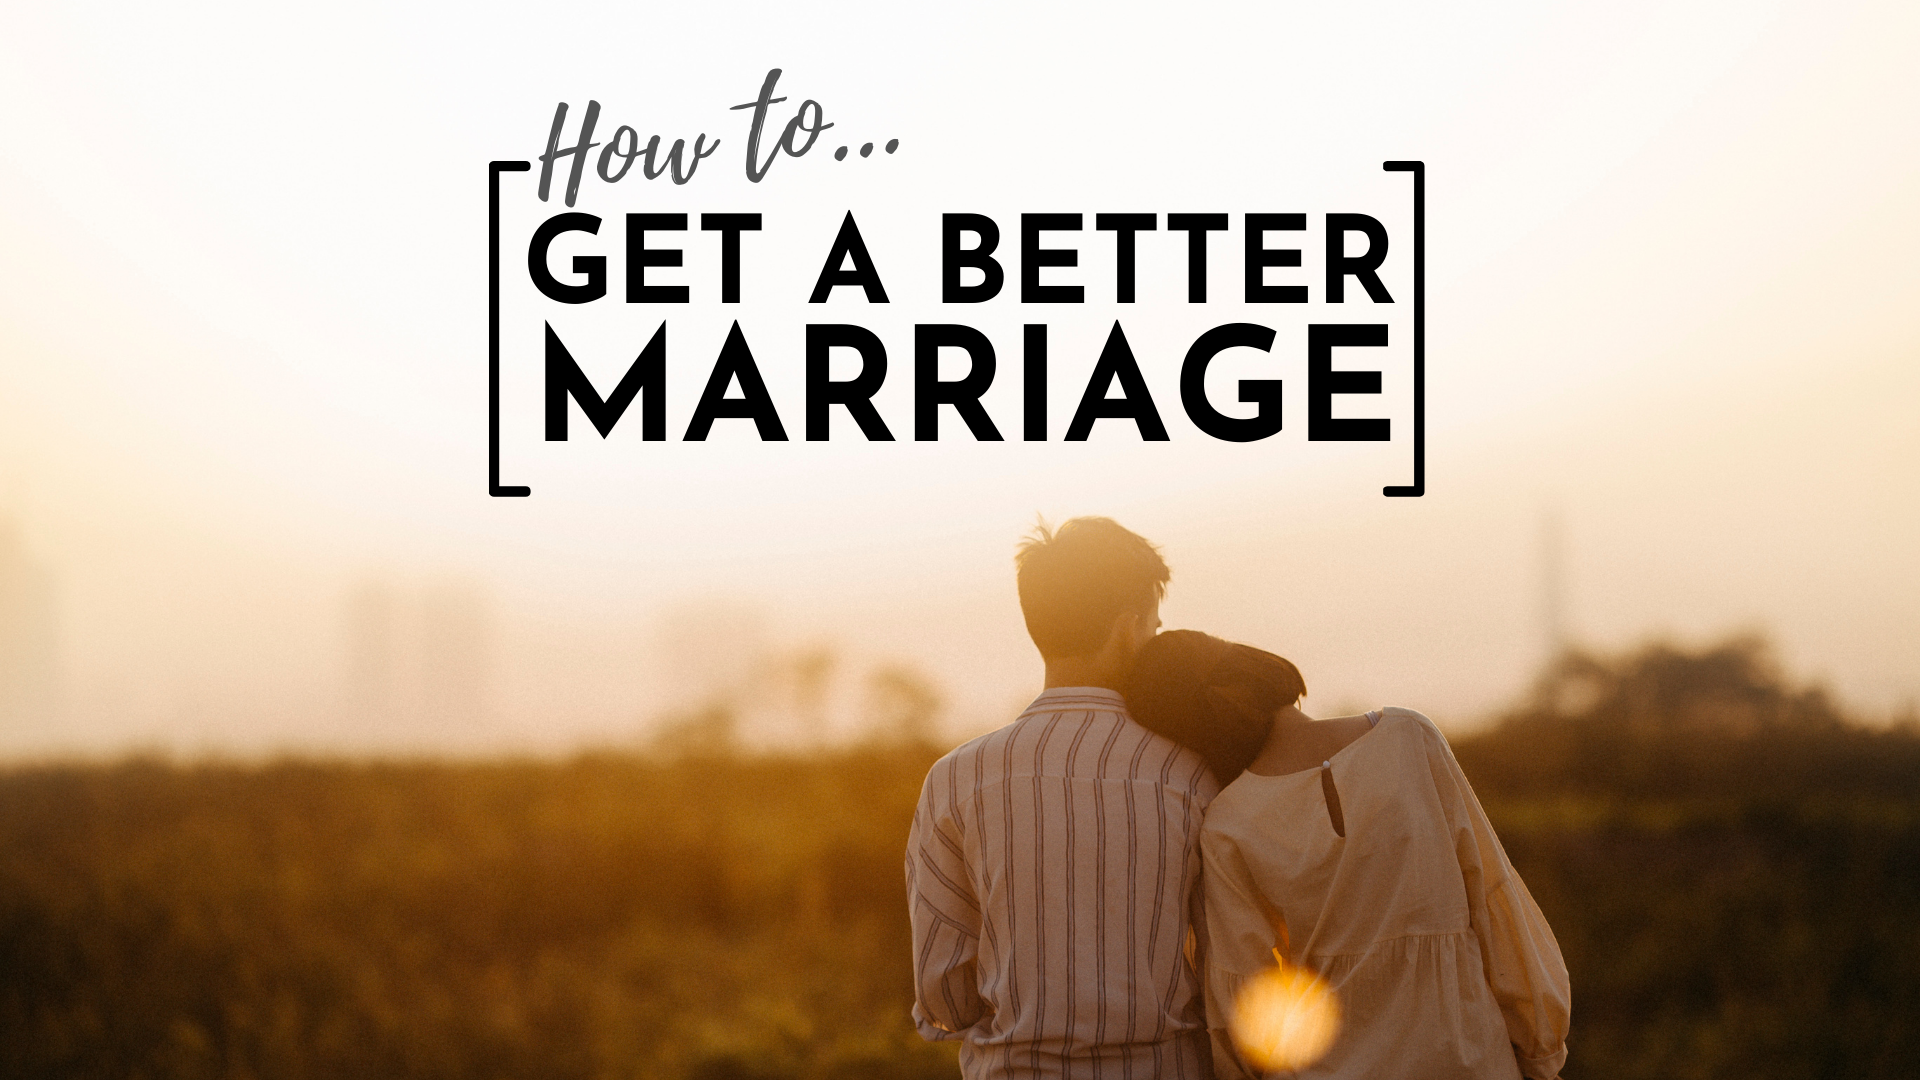 GET A BETTER MARRIAGE